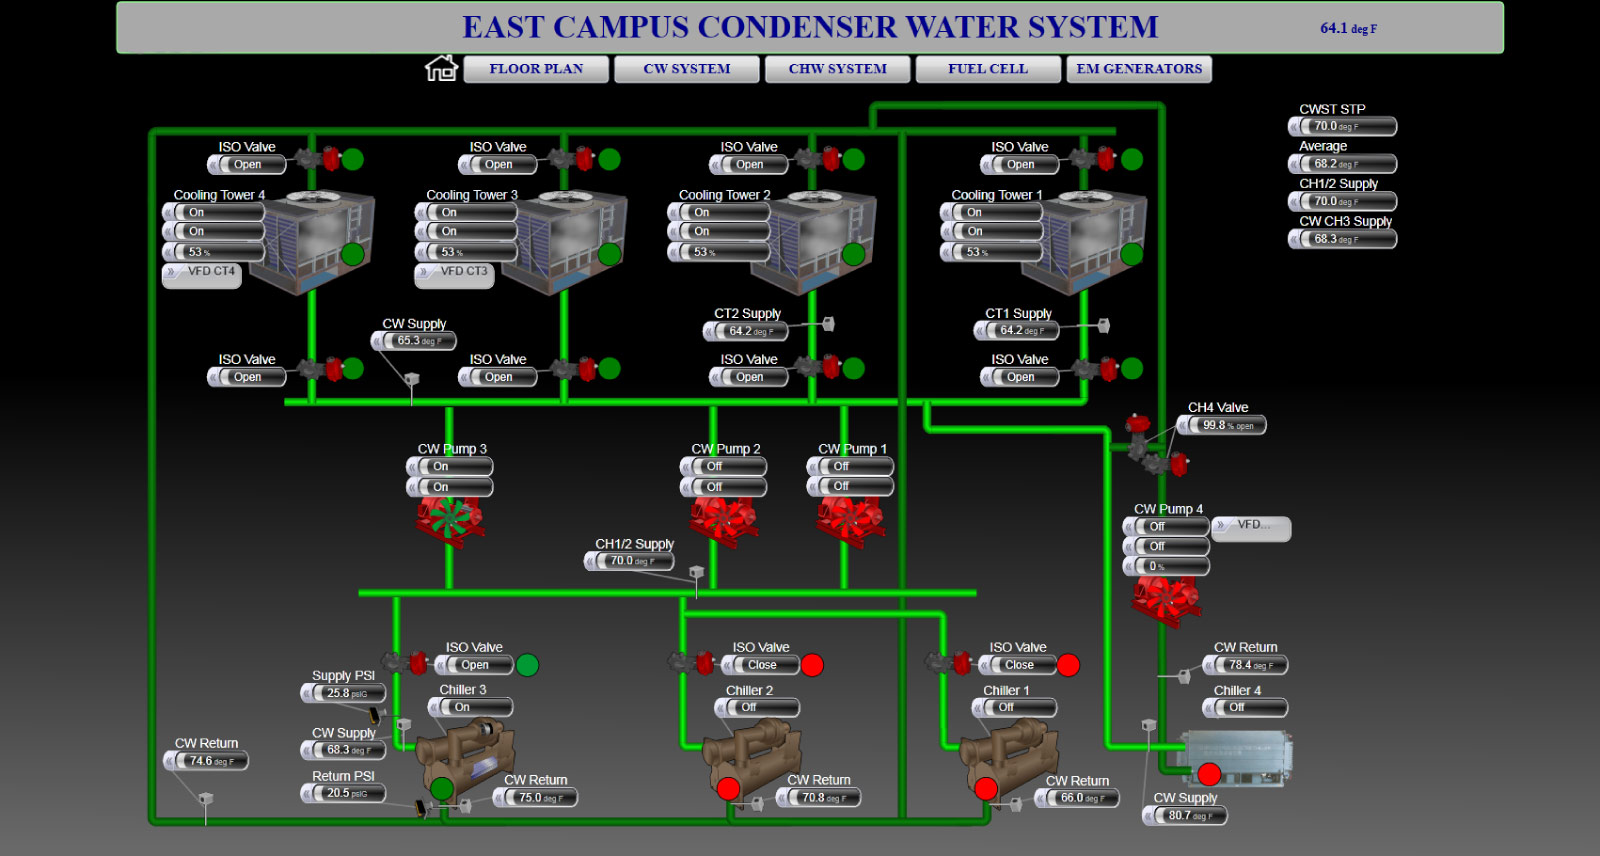 Example of Building Automation System, a Condenser Water Systsem